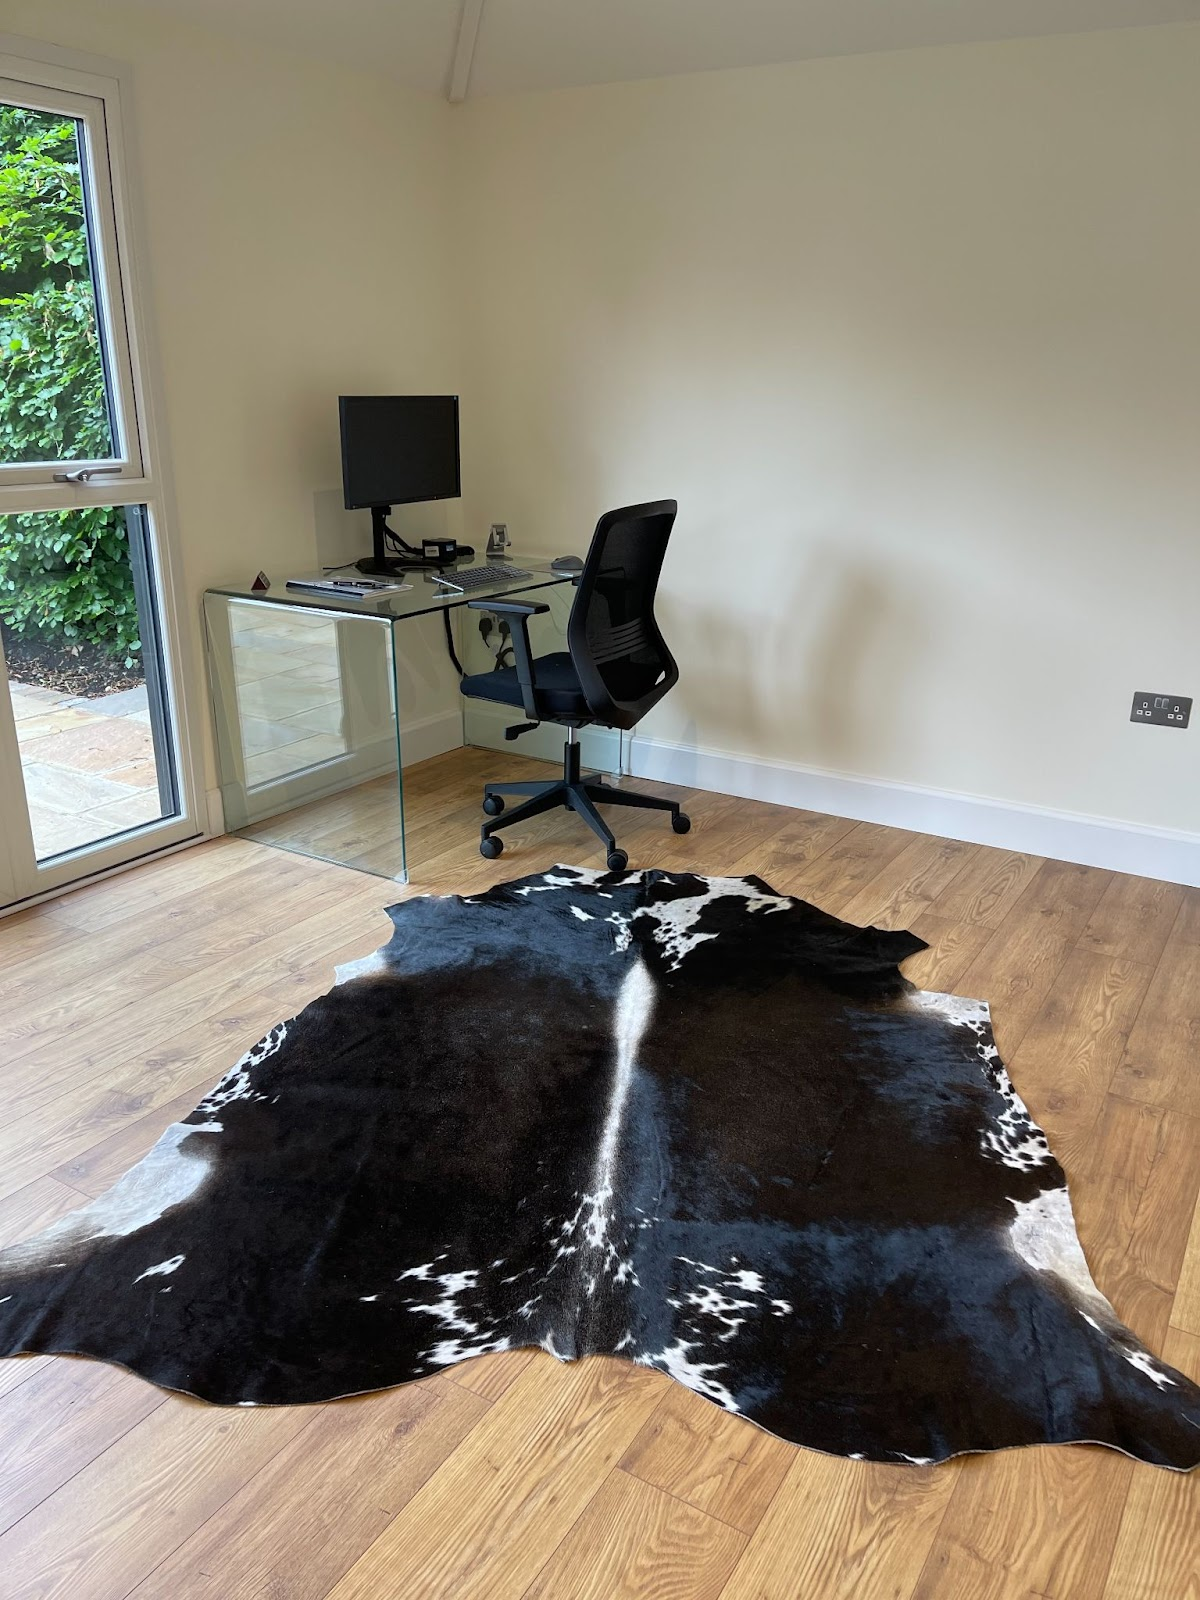 Black and White cowhide rug in home office space next to desk